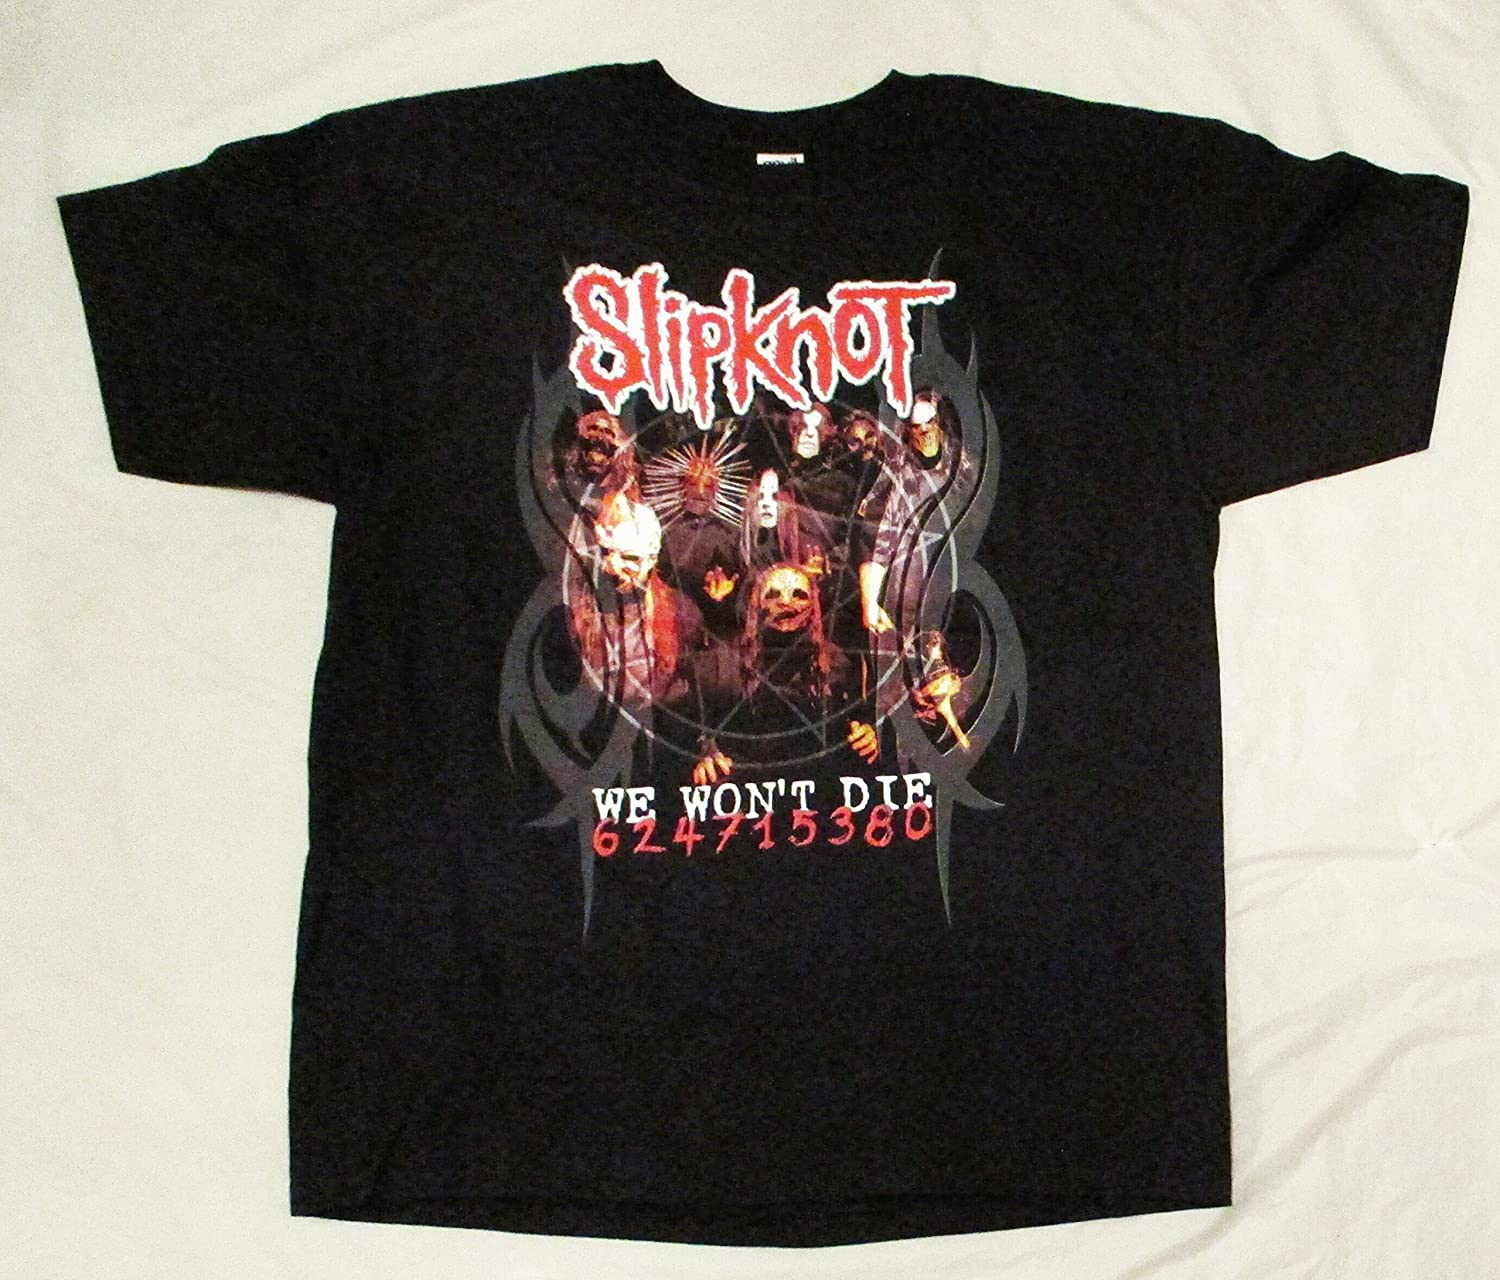 2005 Slipknot Concert T Shirt We Won't Die U.S. Tour XL X-Large